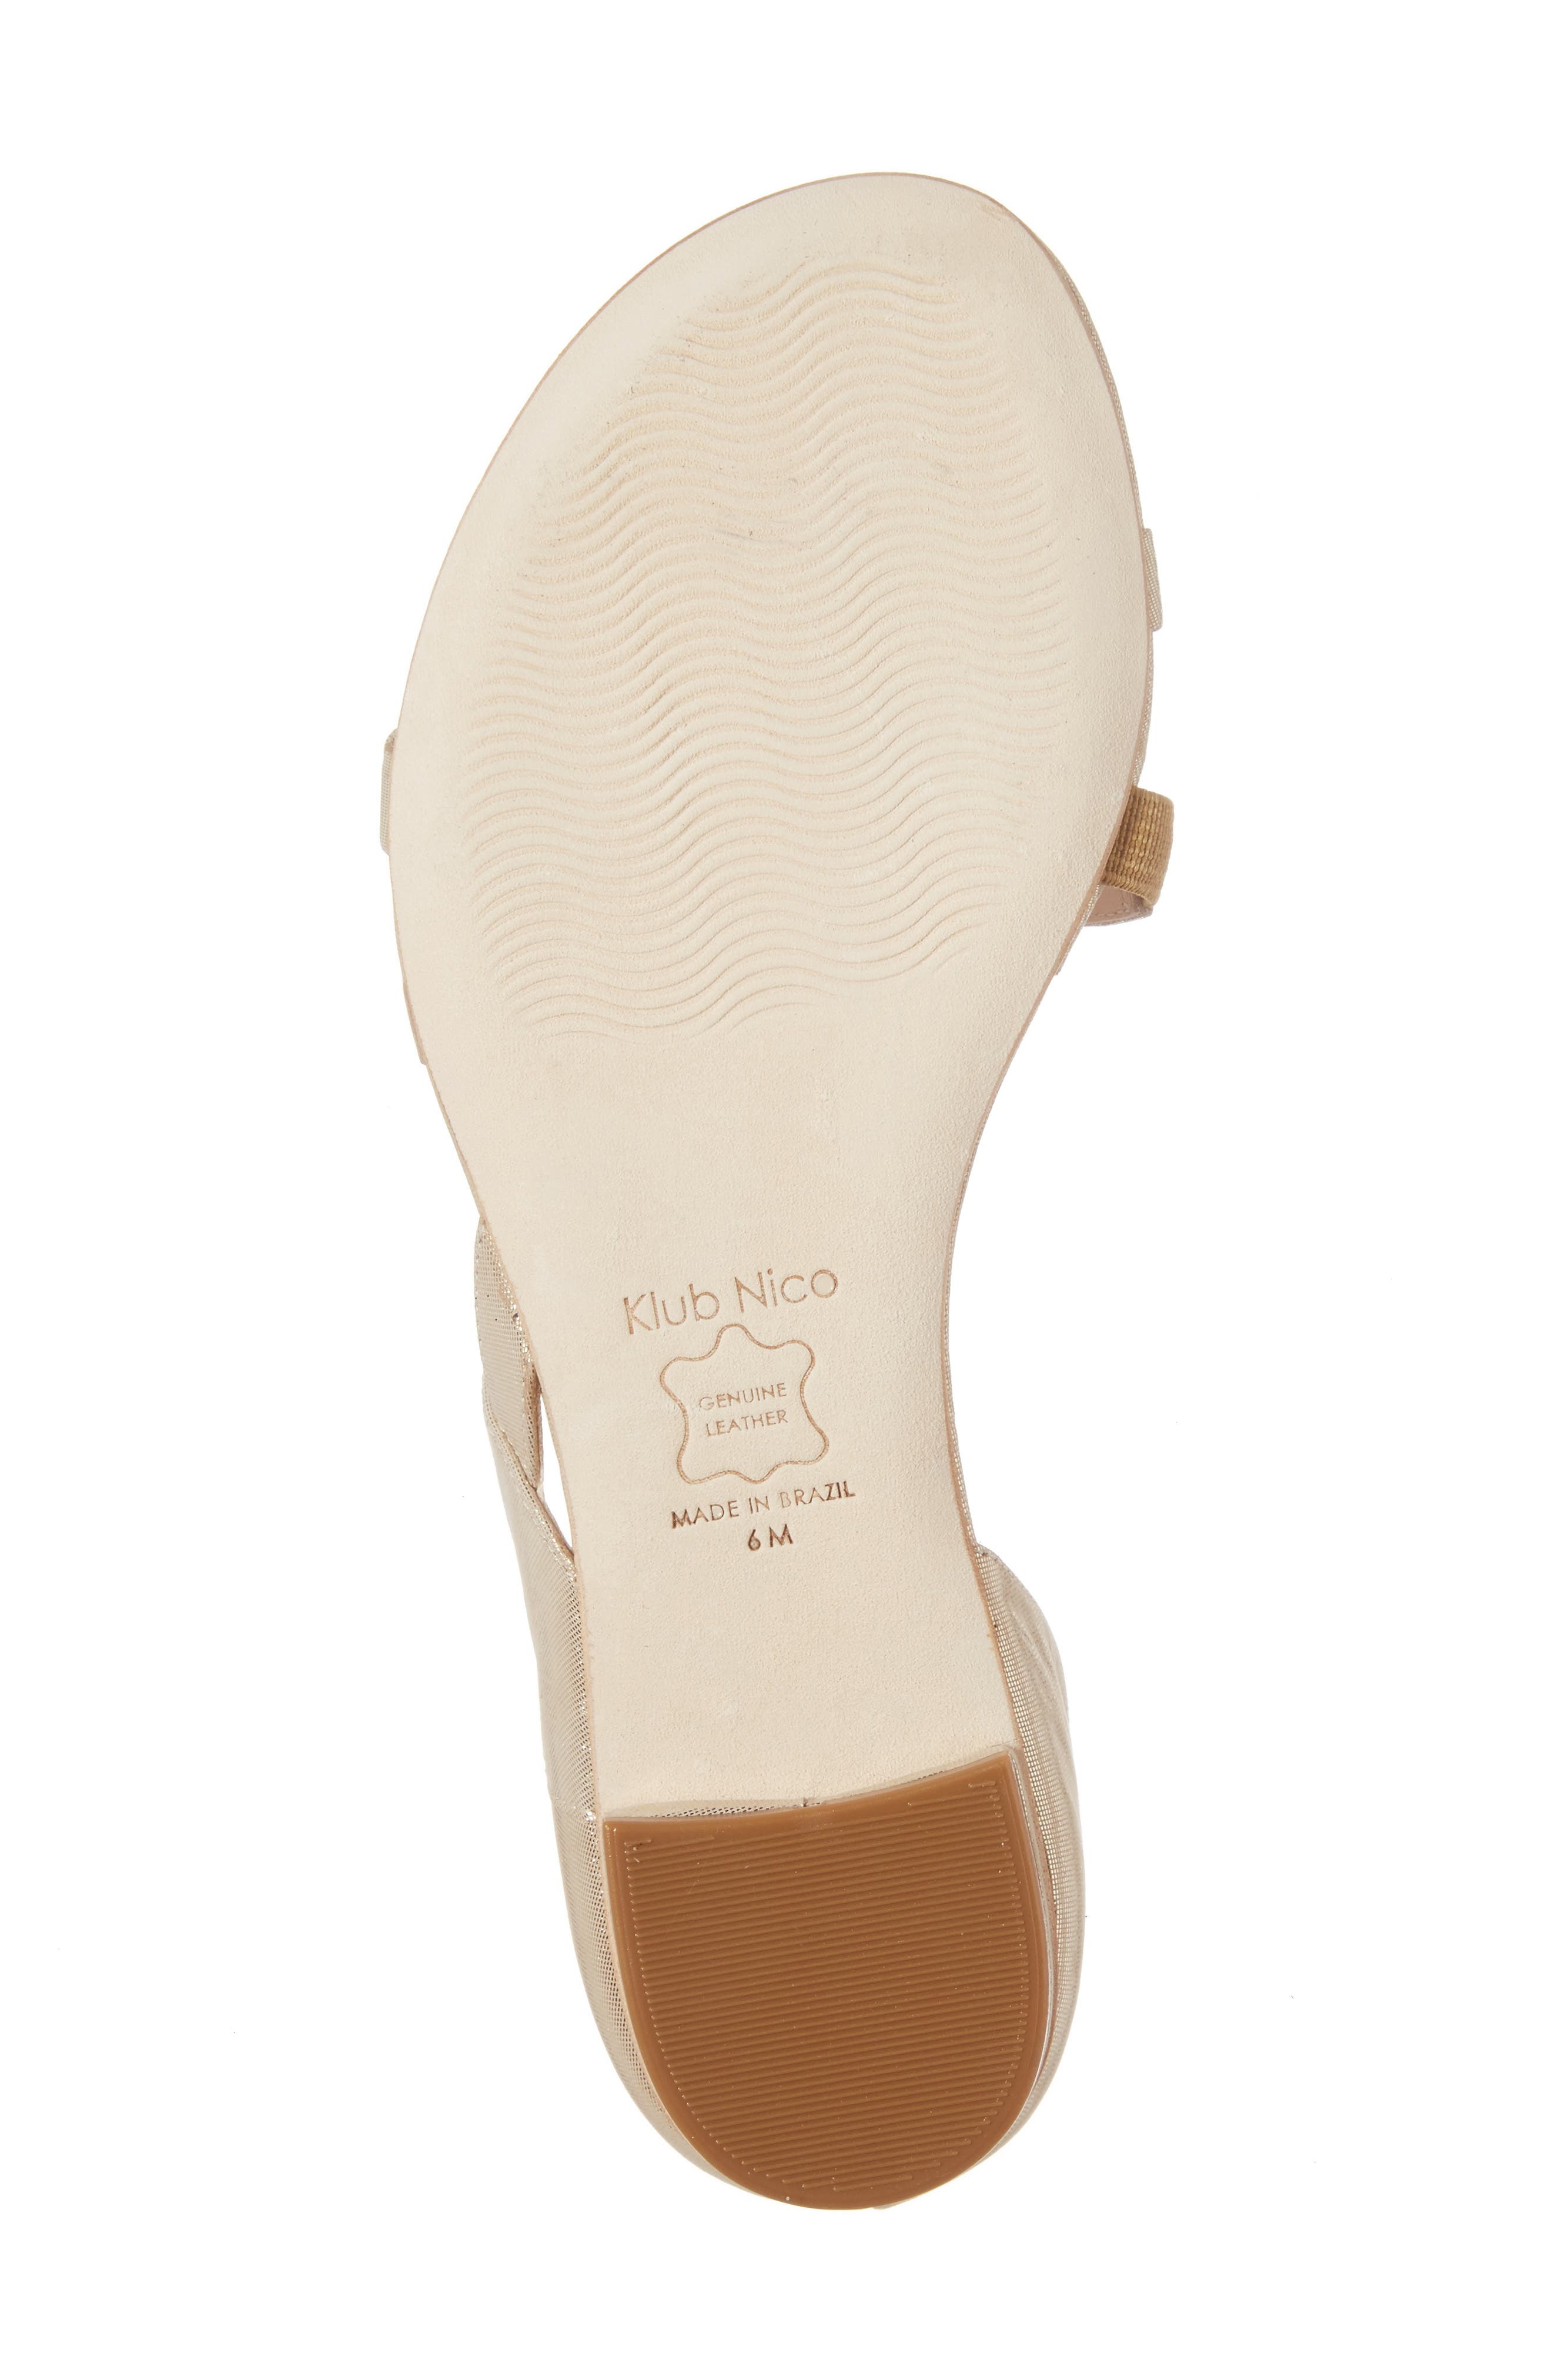 KLUB NICO, Jeanne Sandal, Alternate thumbnail 6, color, CHAMPAGNE LEATHER